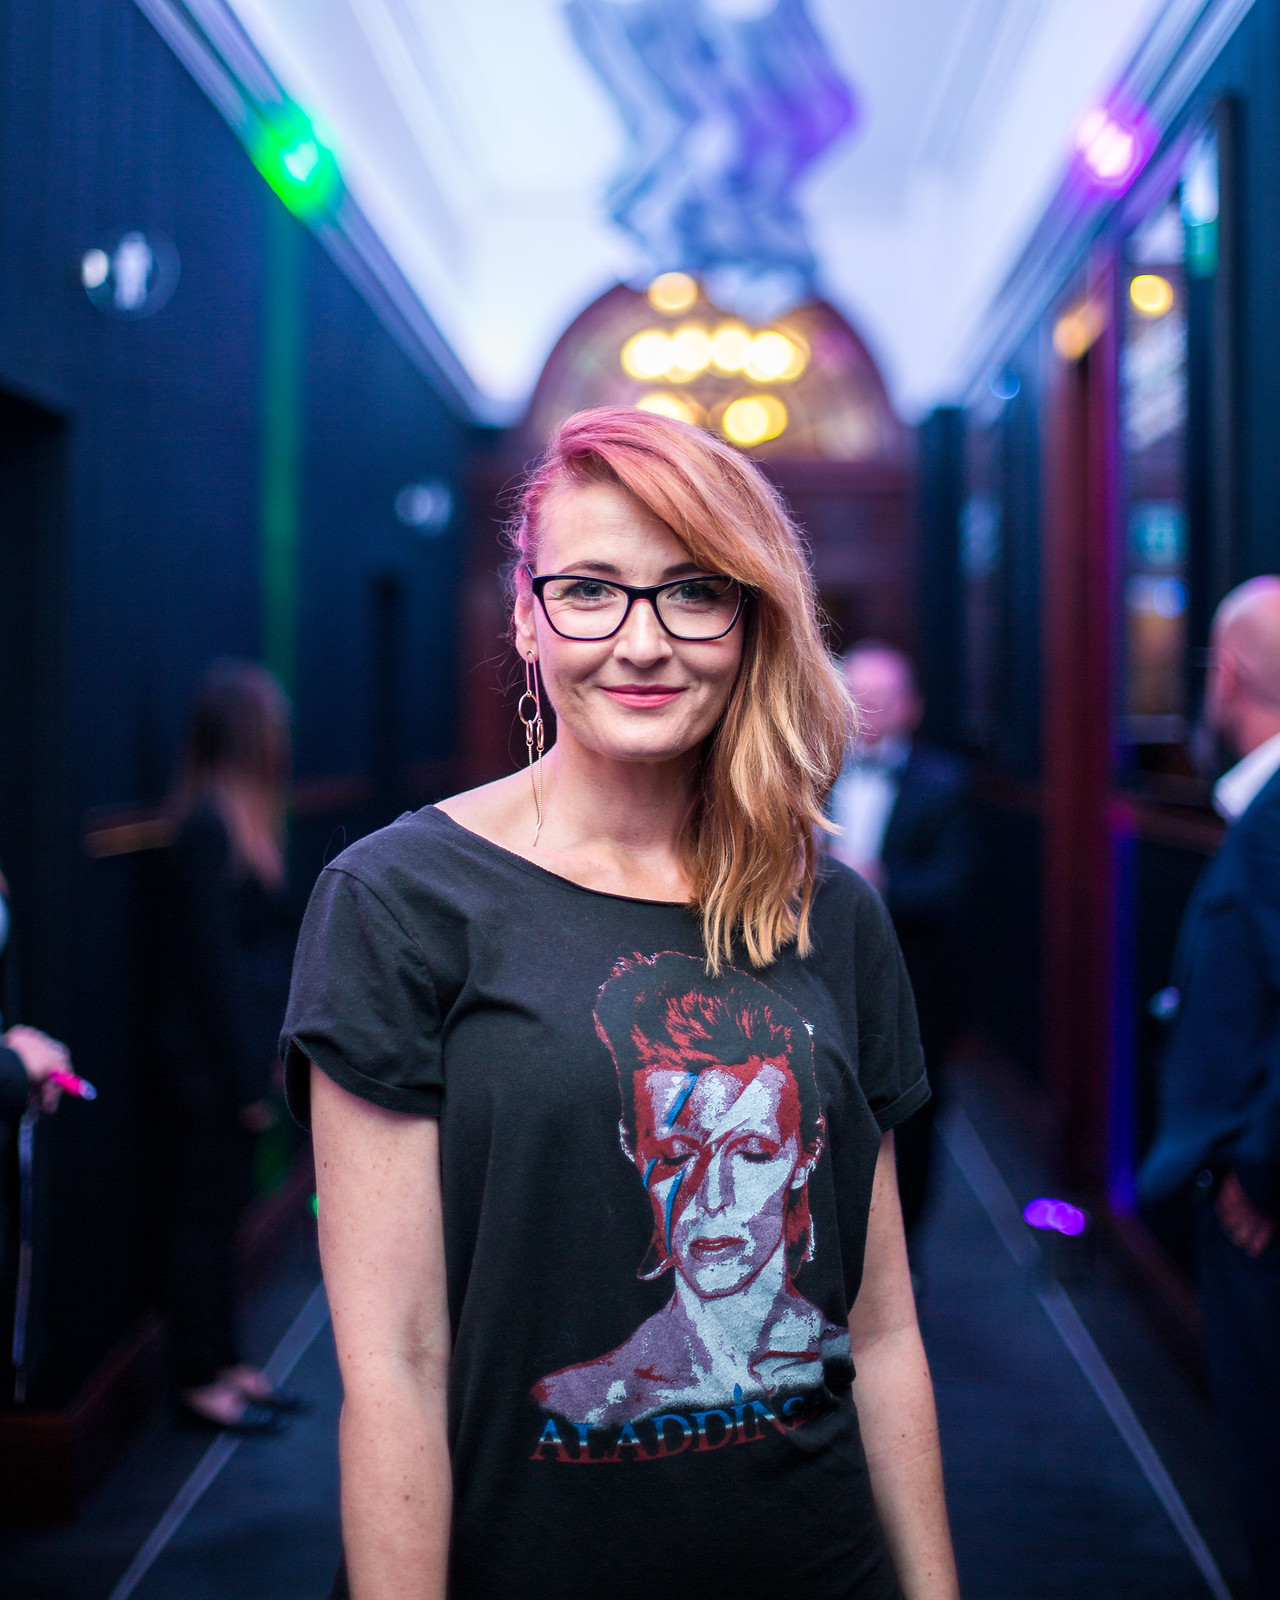 Specsavers SWOTY 2017: Evening/cocktail date night outfit - David Bowie rock t-shirt tee \ black sequin trousers \ bright orange pointed heels | Not Dressed As Lamb, over 40 style (photo by Luke Jackson-Clark)